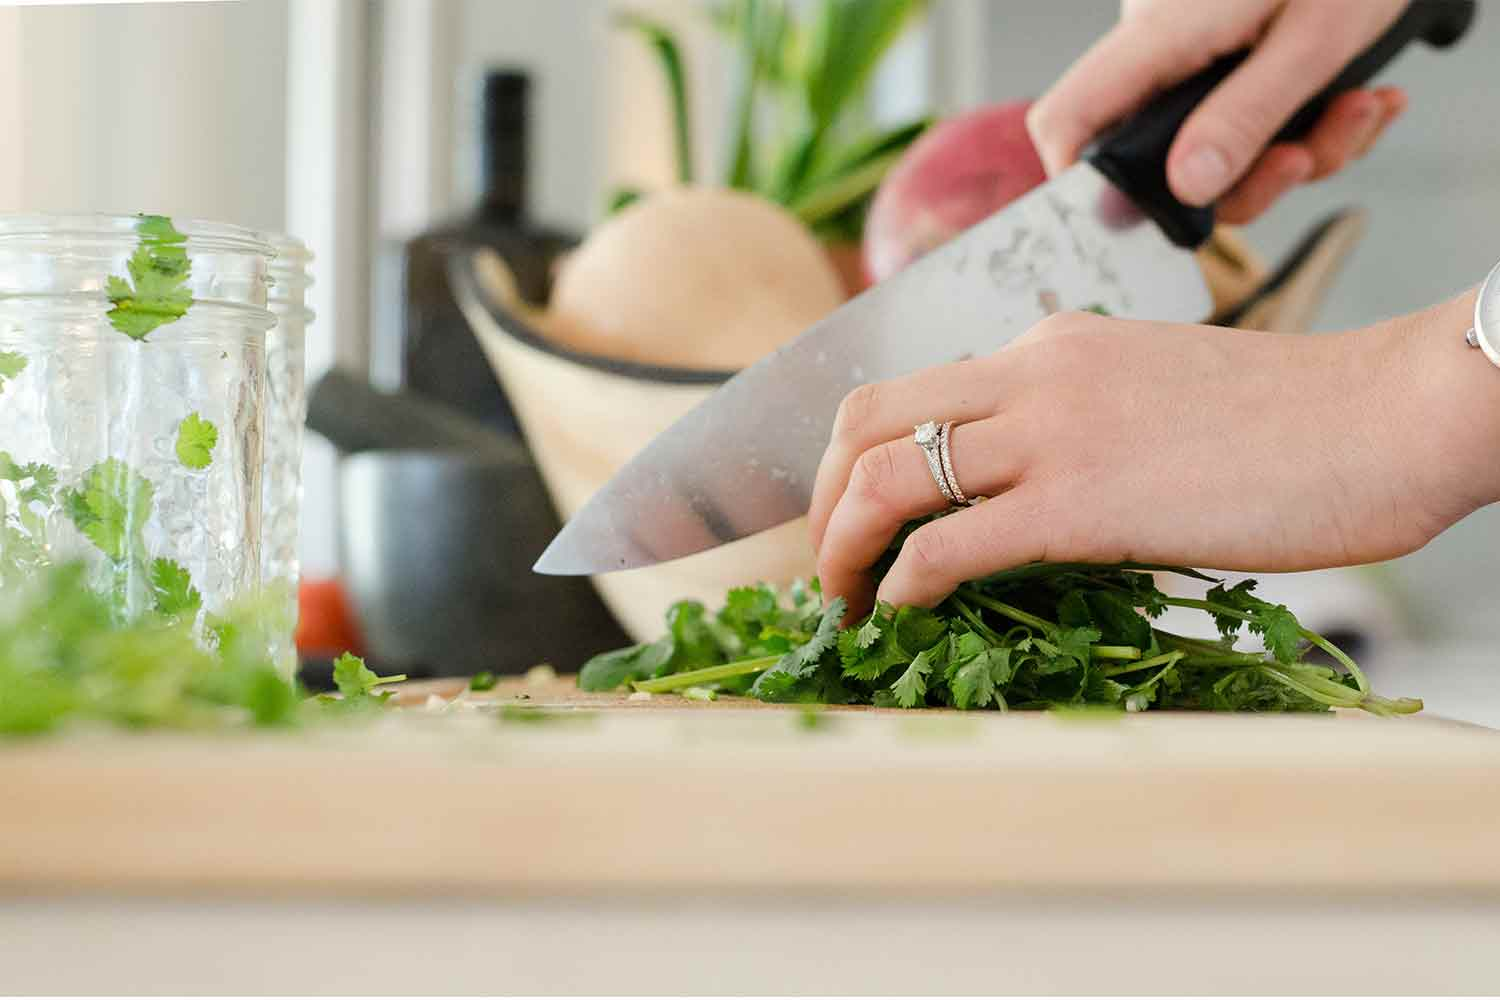 Chopping-herbs-in-the-kitchen.jpg